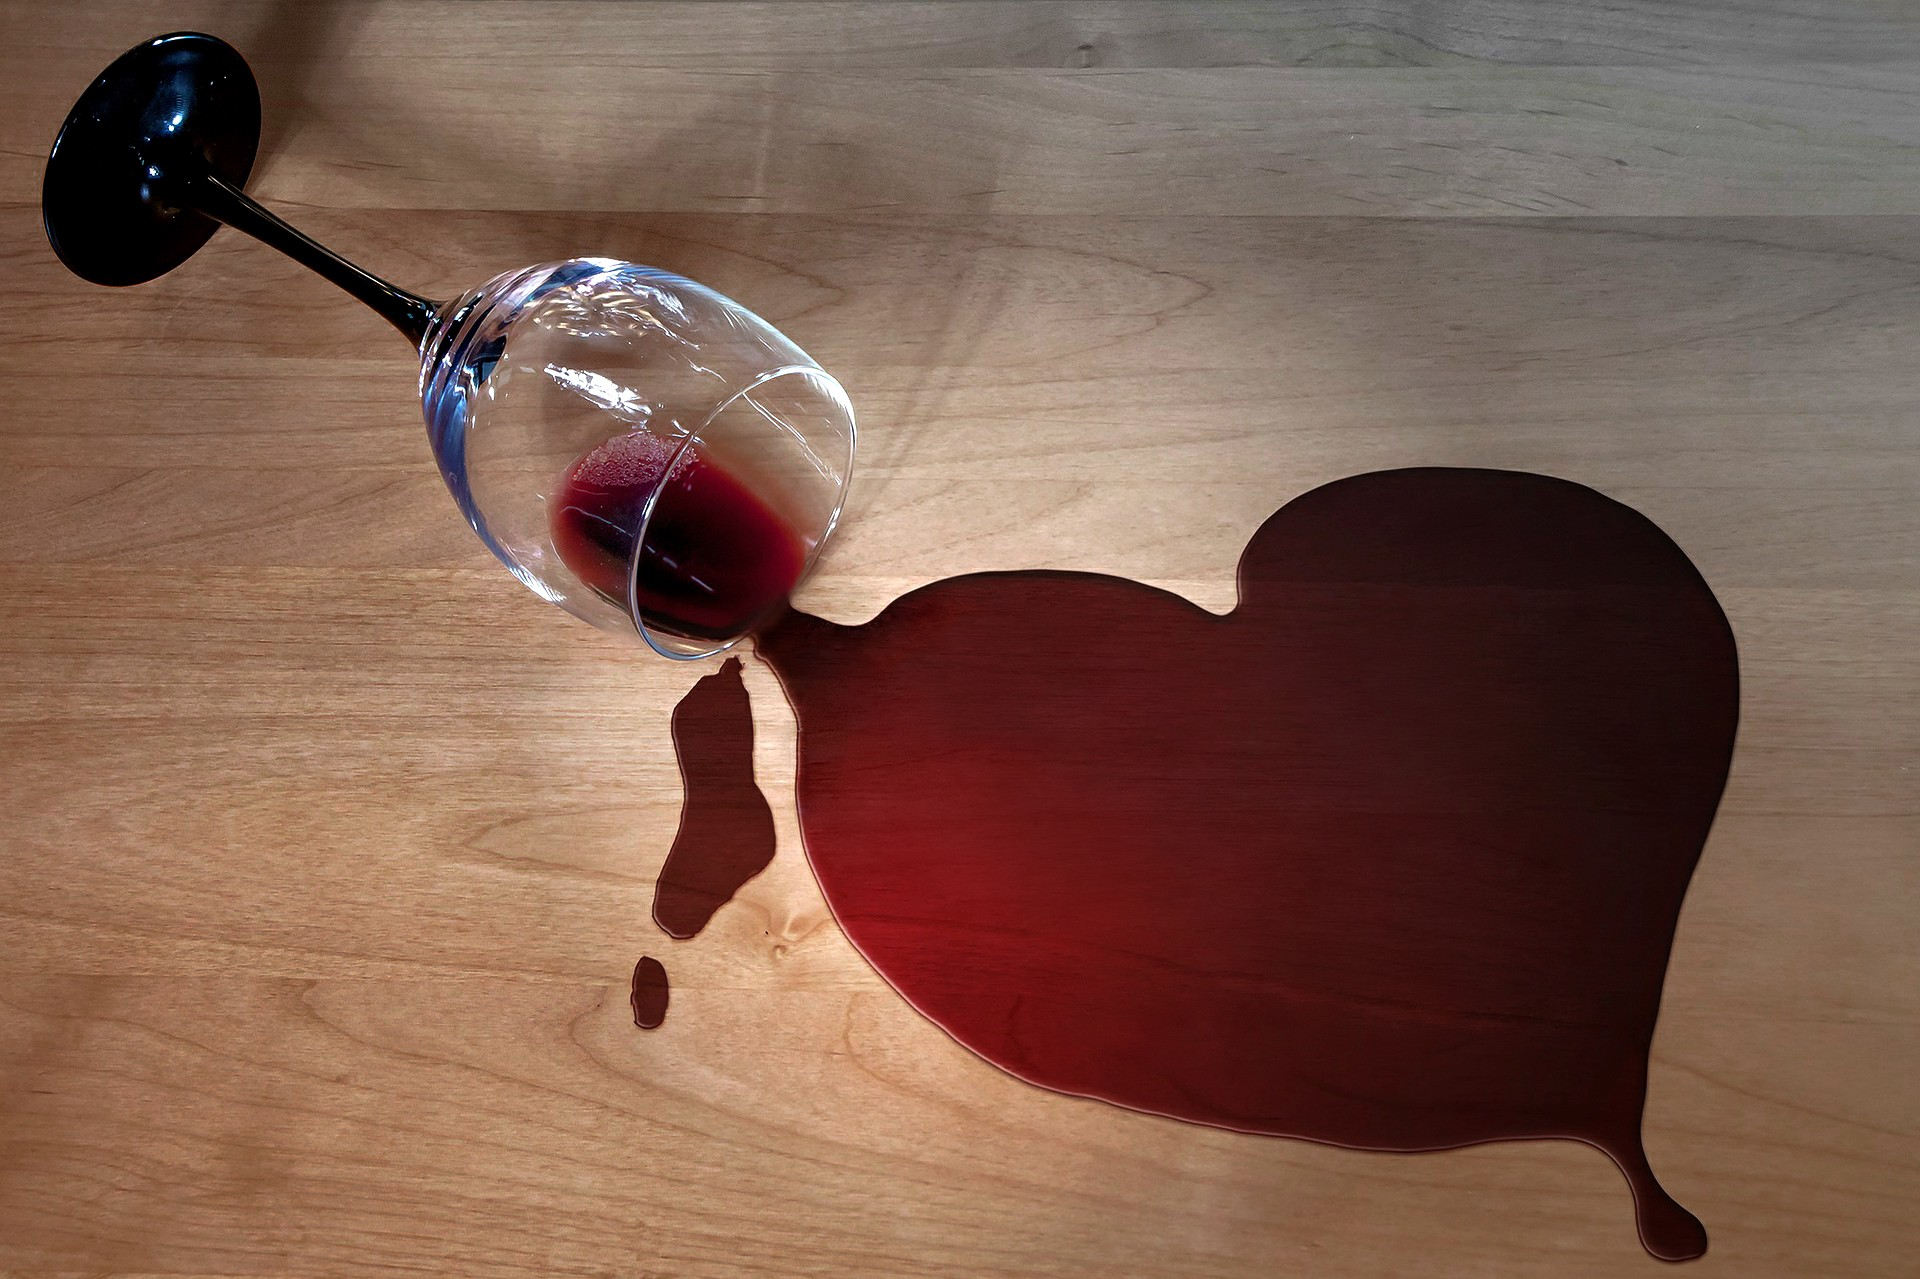 Spilled red wine into the shape of a heart